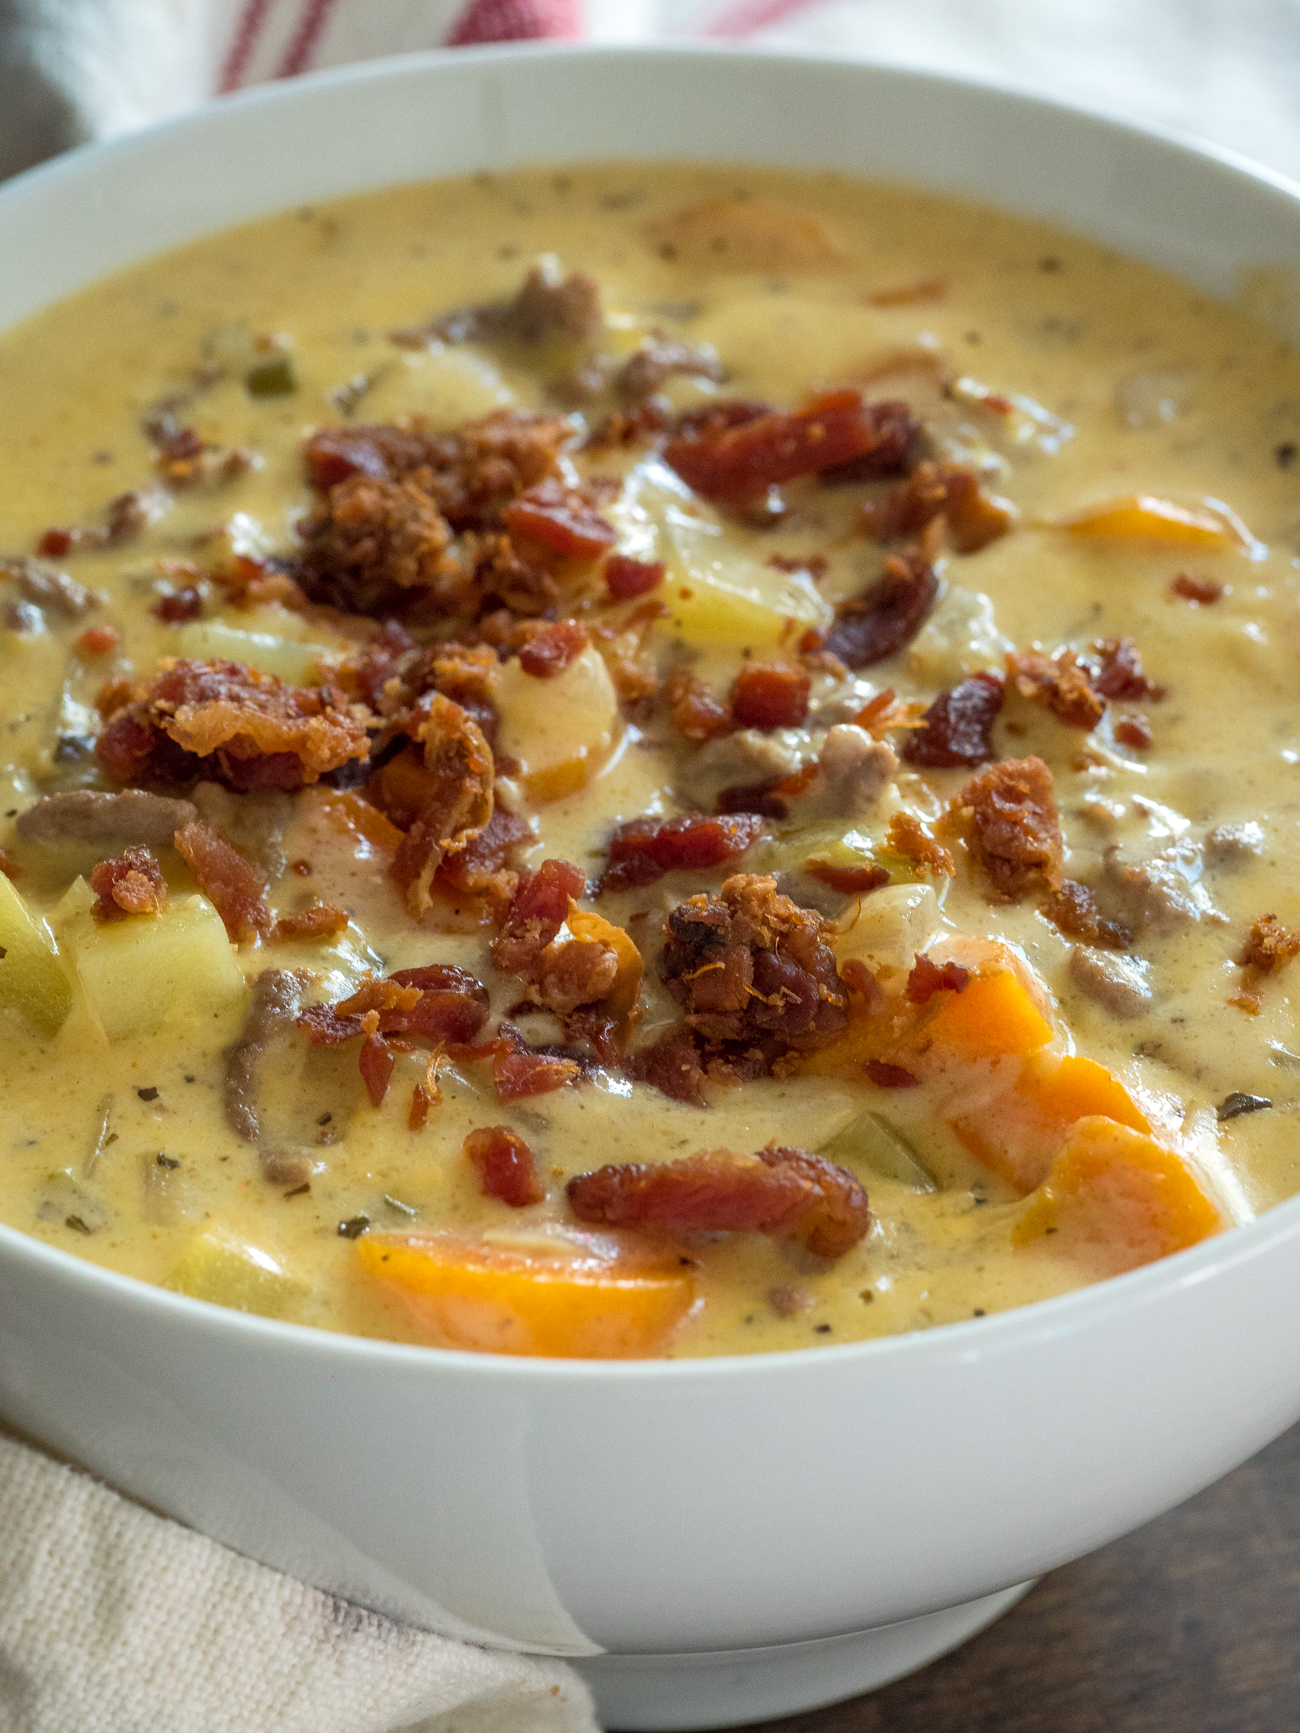 Creamy-Slow-Cooker-Cheeseburge-Soup-Vertical-5